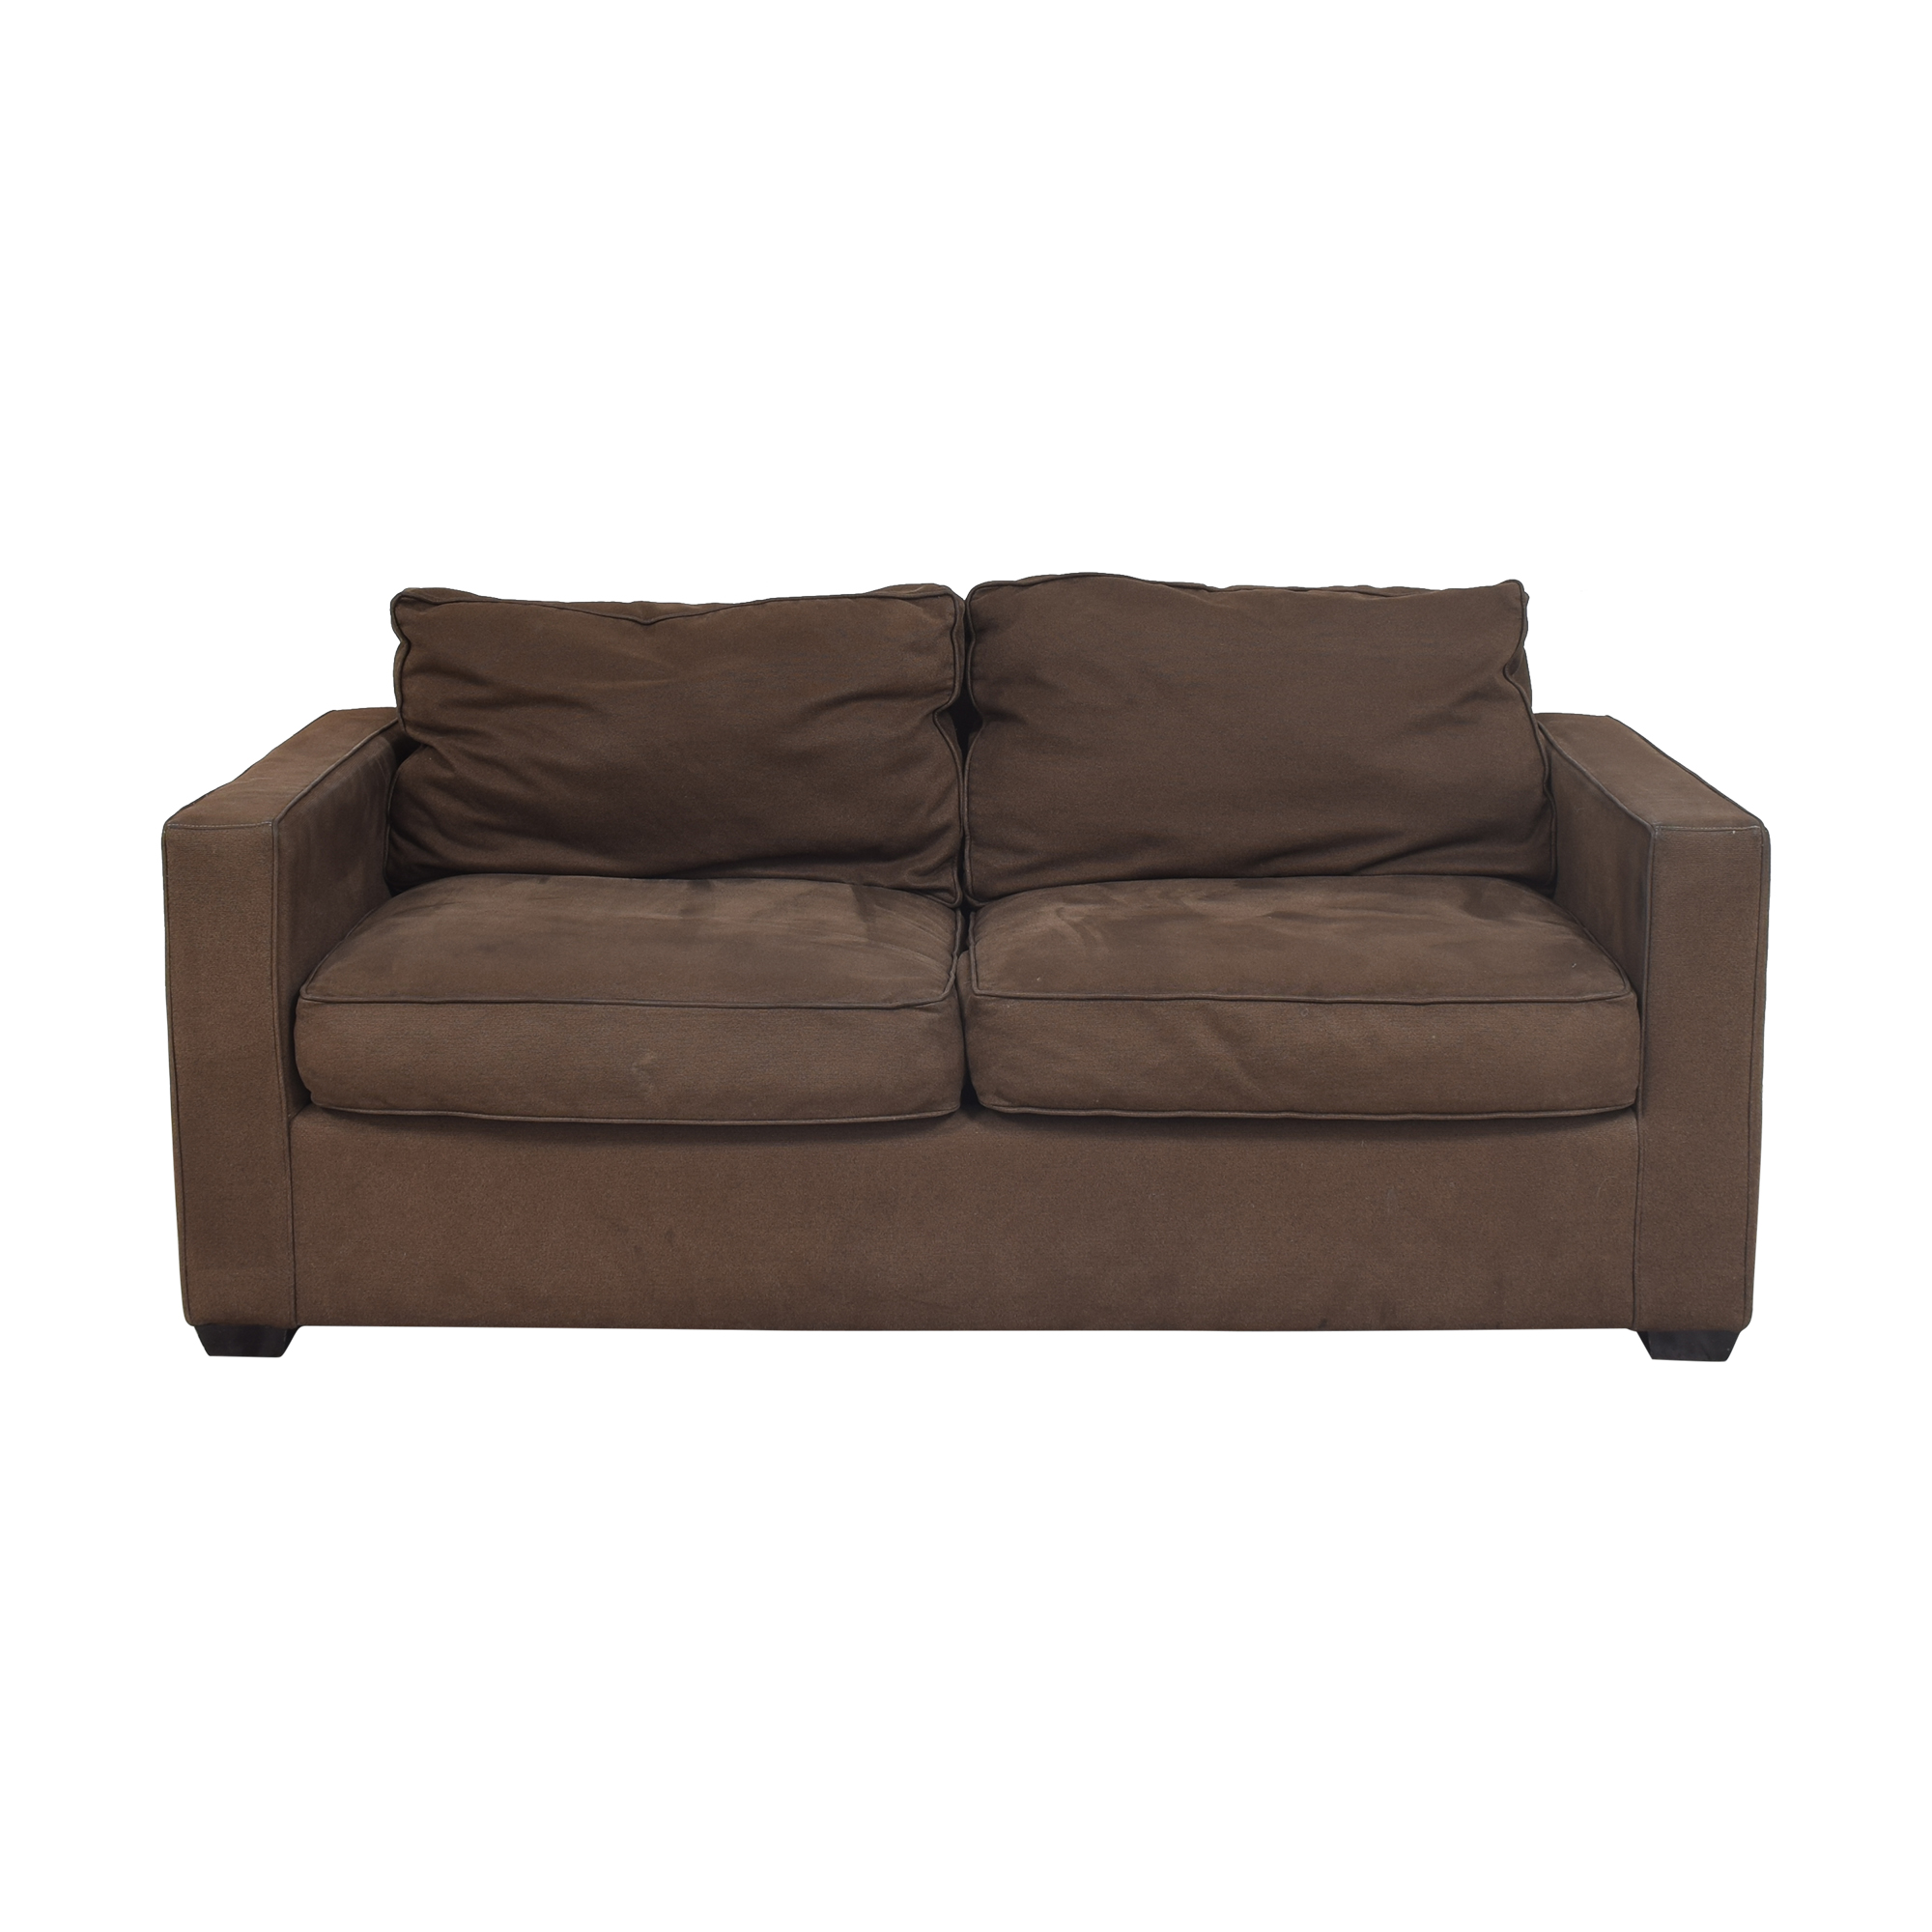 buy Room & Board York Two Cushion Sofa Room & Board Classic Sofas